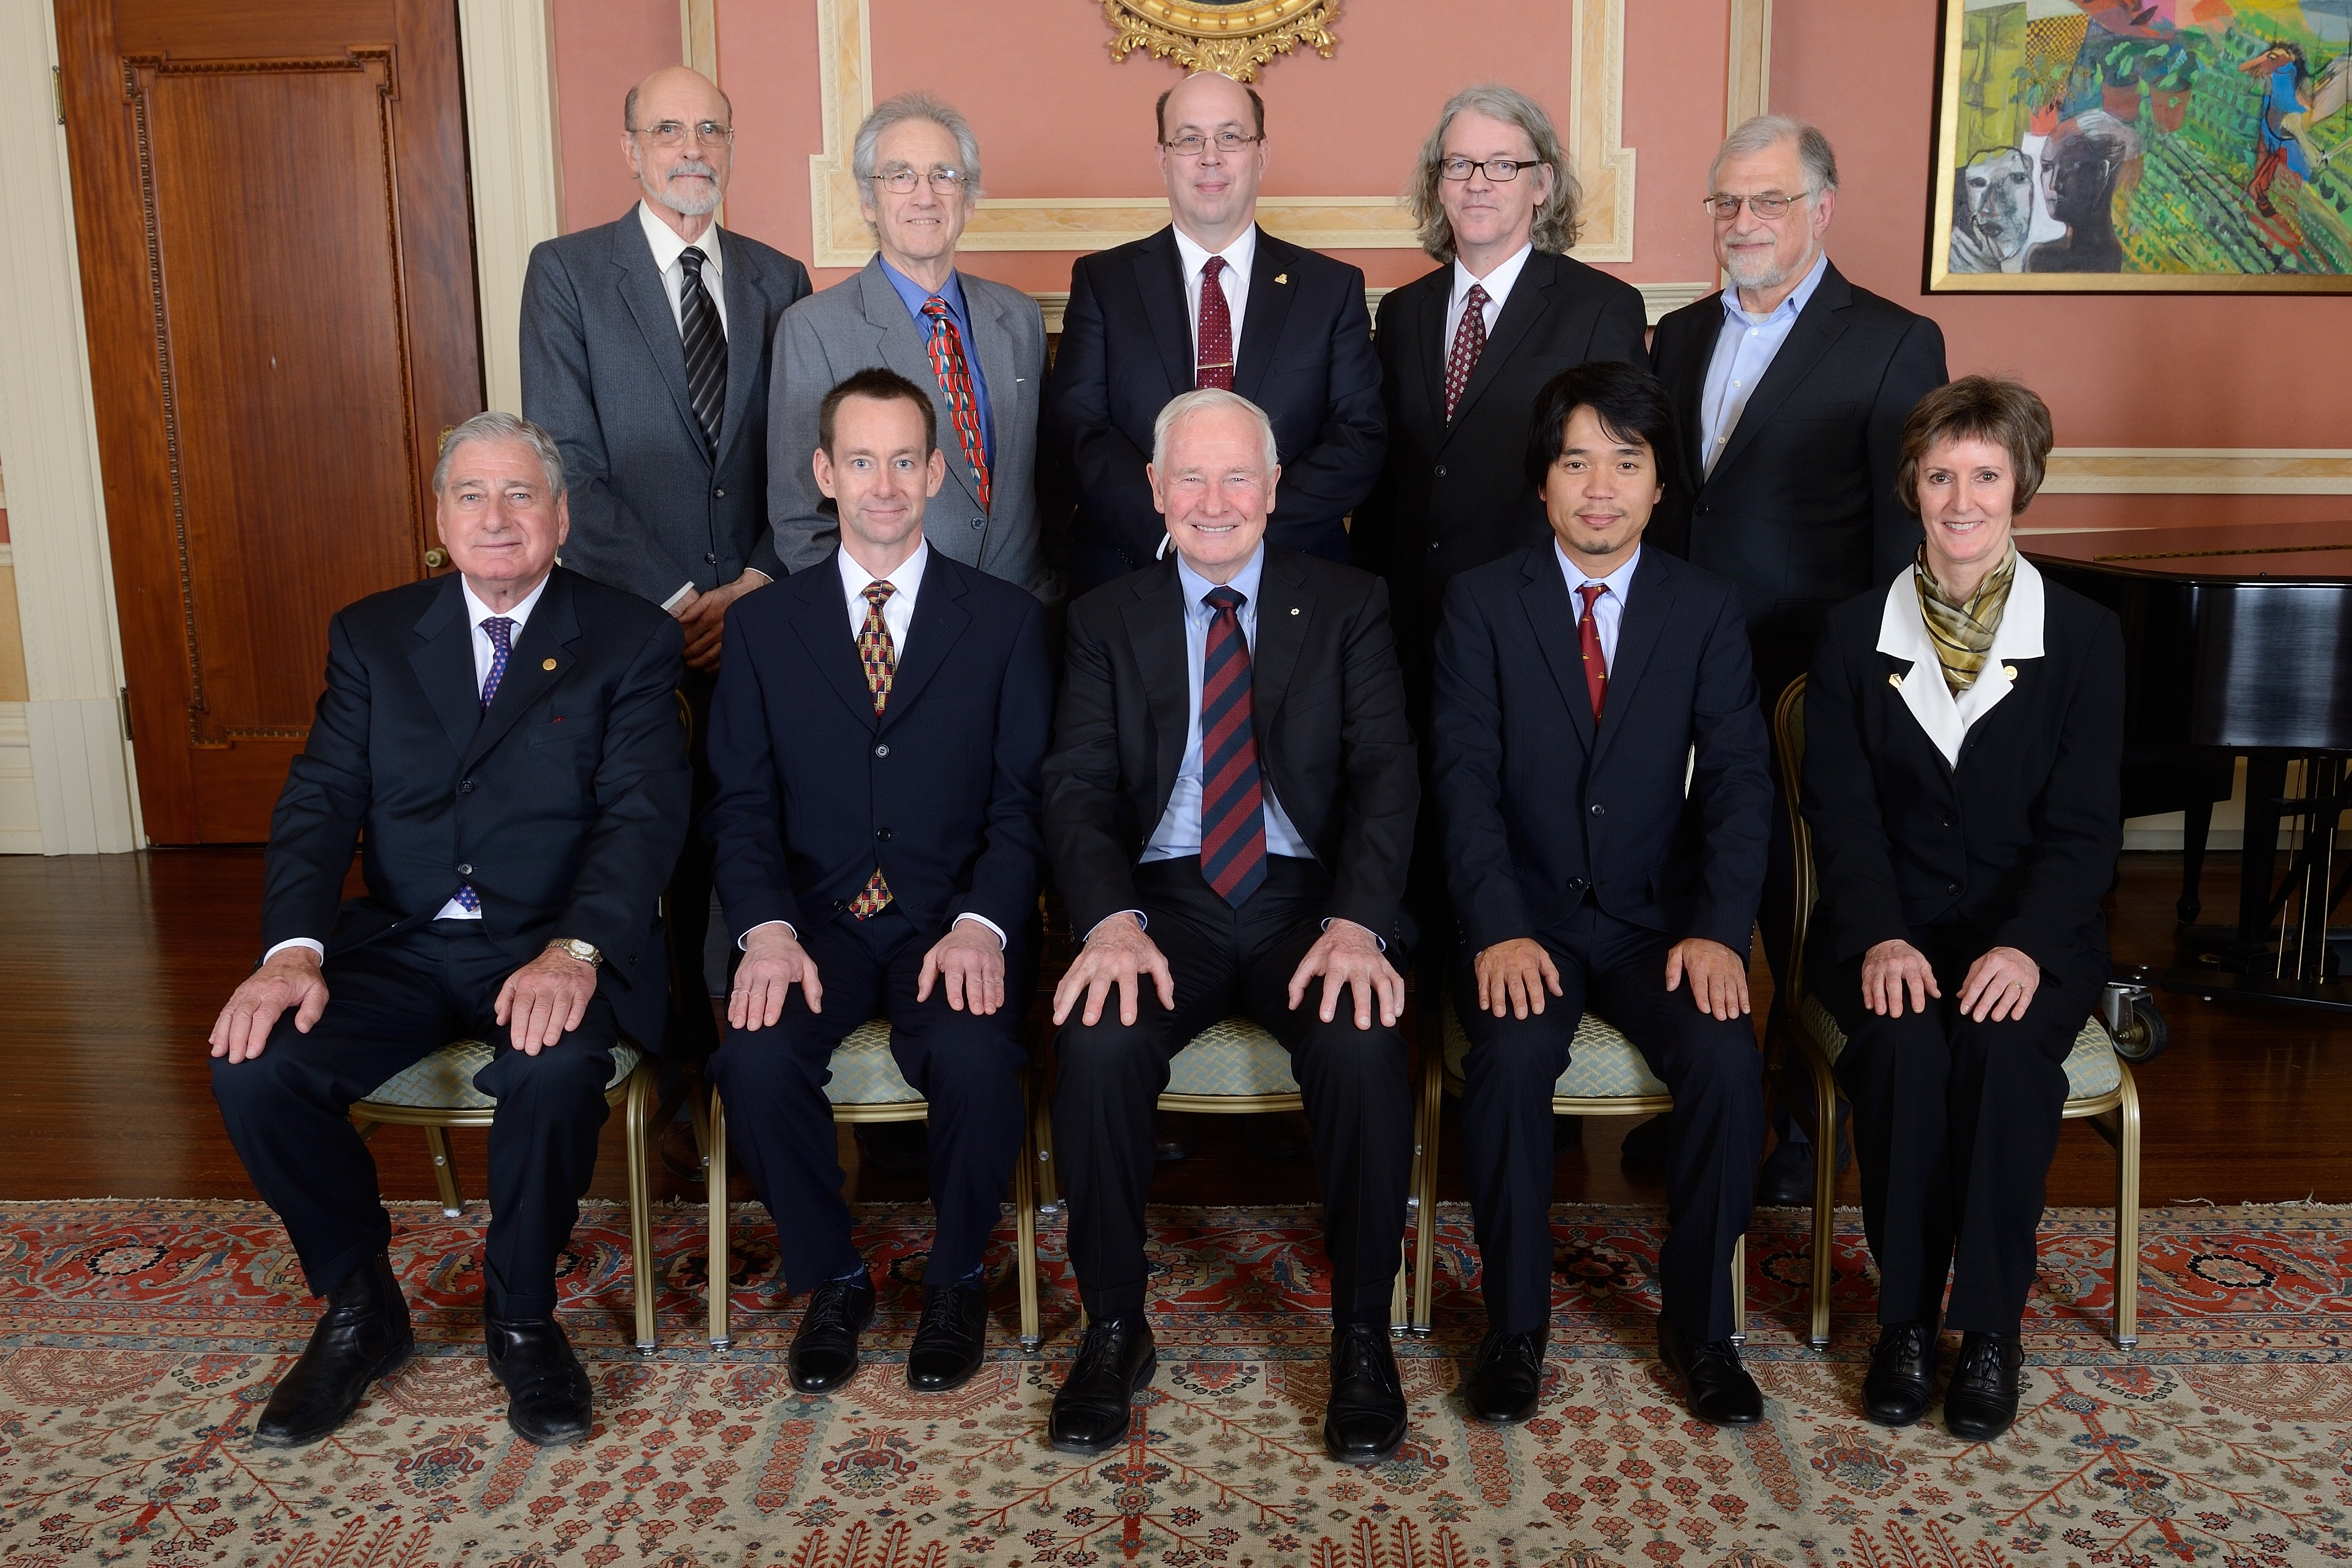 ALPHA Canada team upon receiving the NSERC Polanyi Prize in 2013. (credit NSERC).